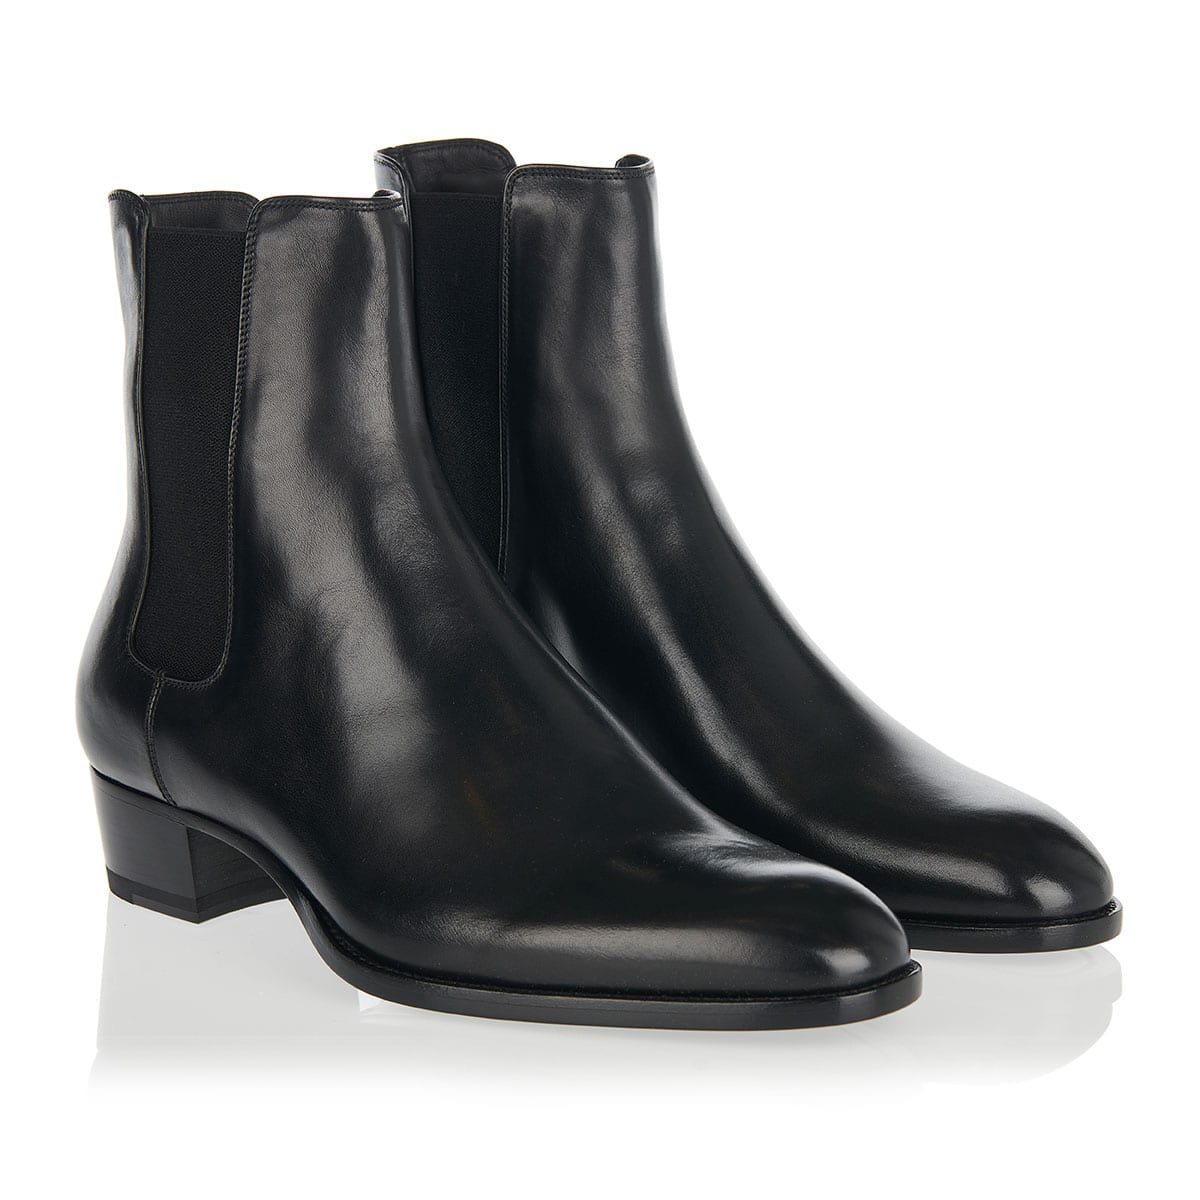 Wyatt leather Chelsea boots